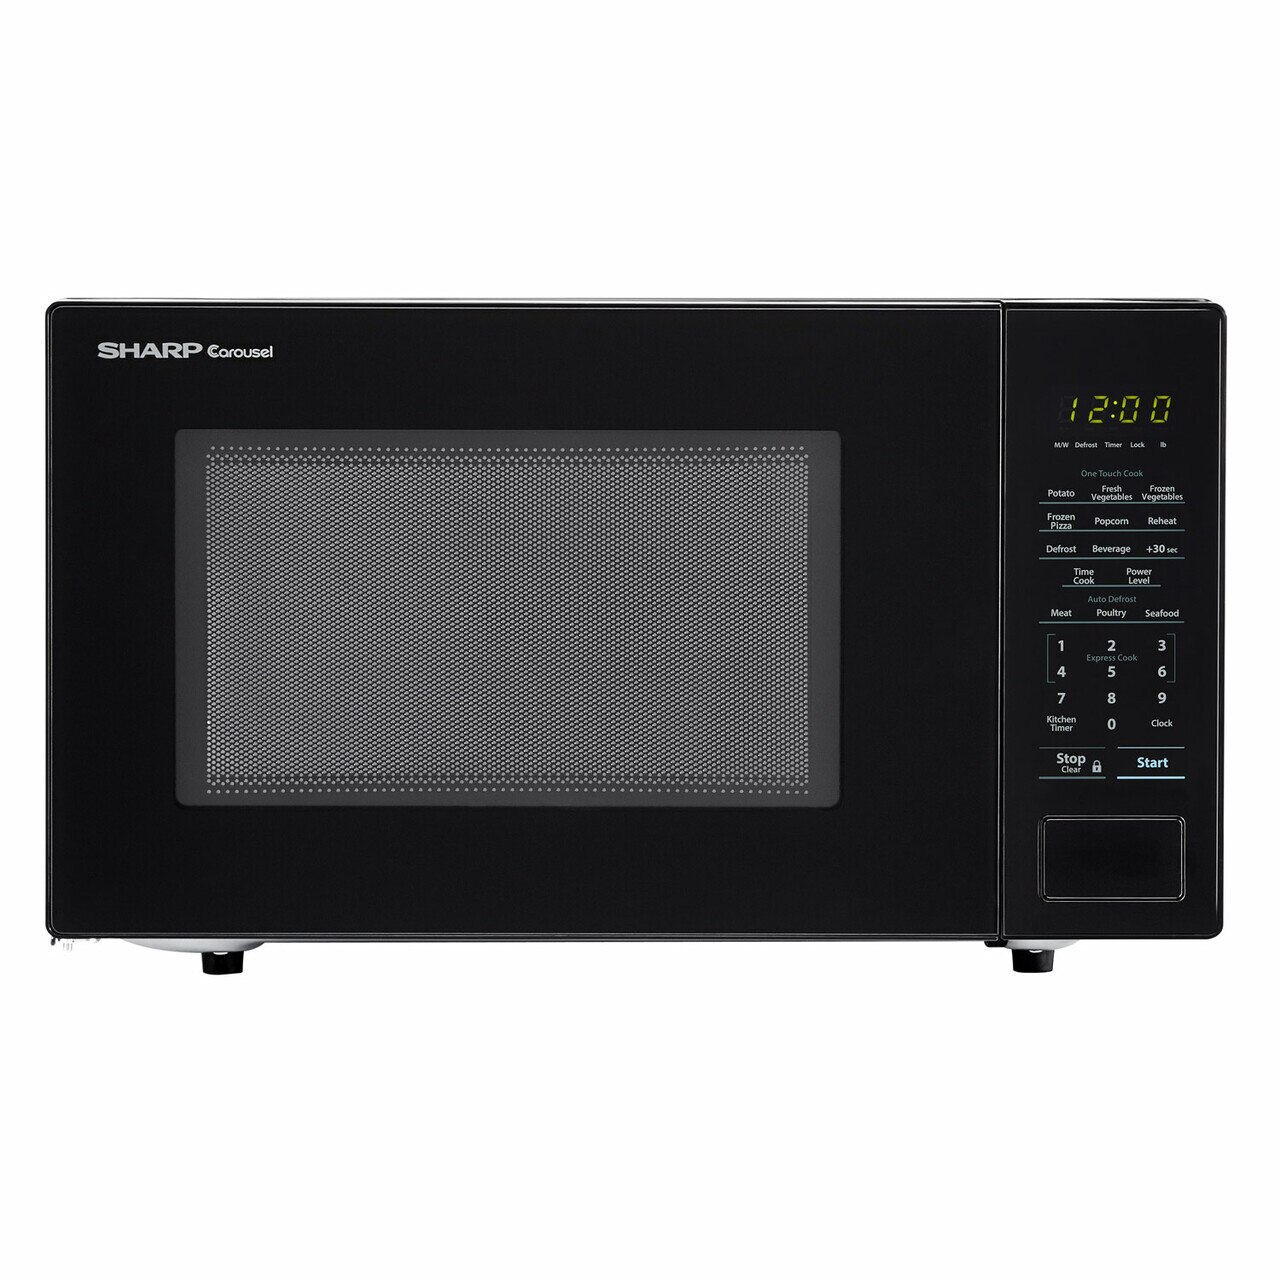 Sharp 1.1 cu. ft. Black Countertop Microwave (SMC1131CB)